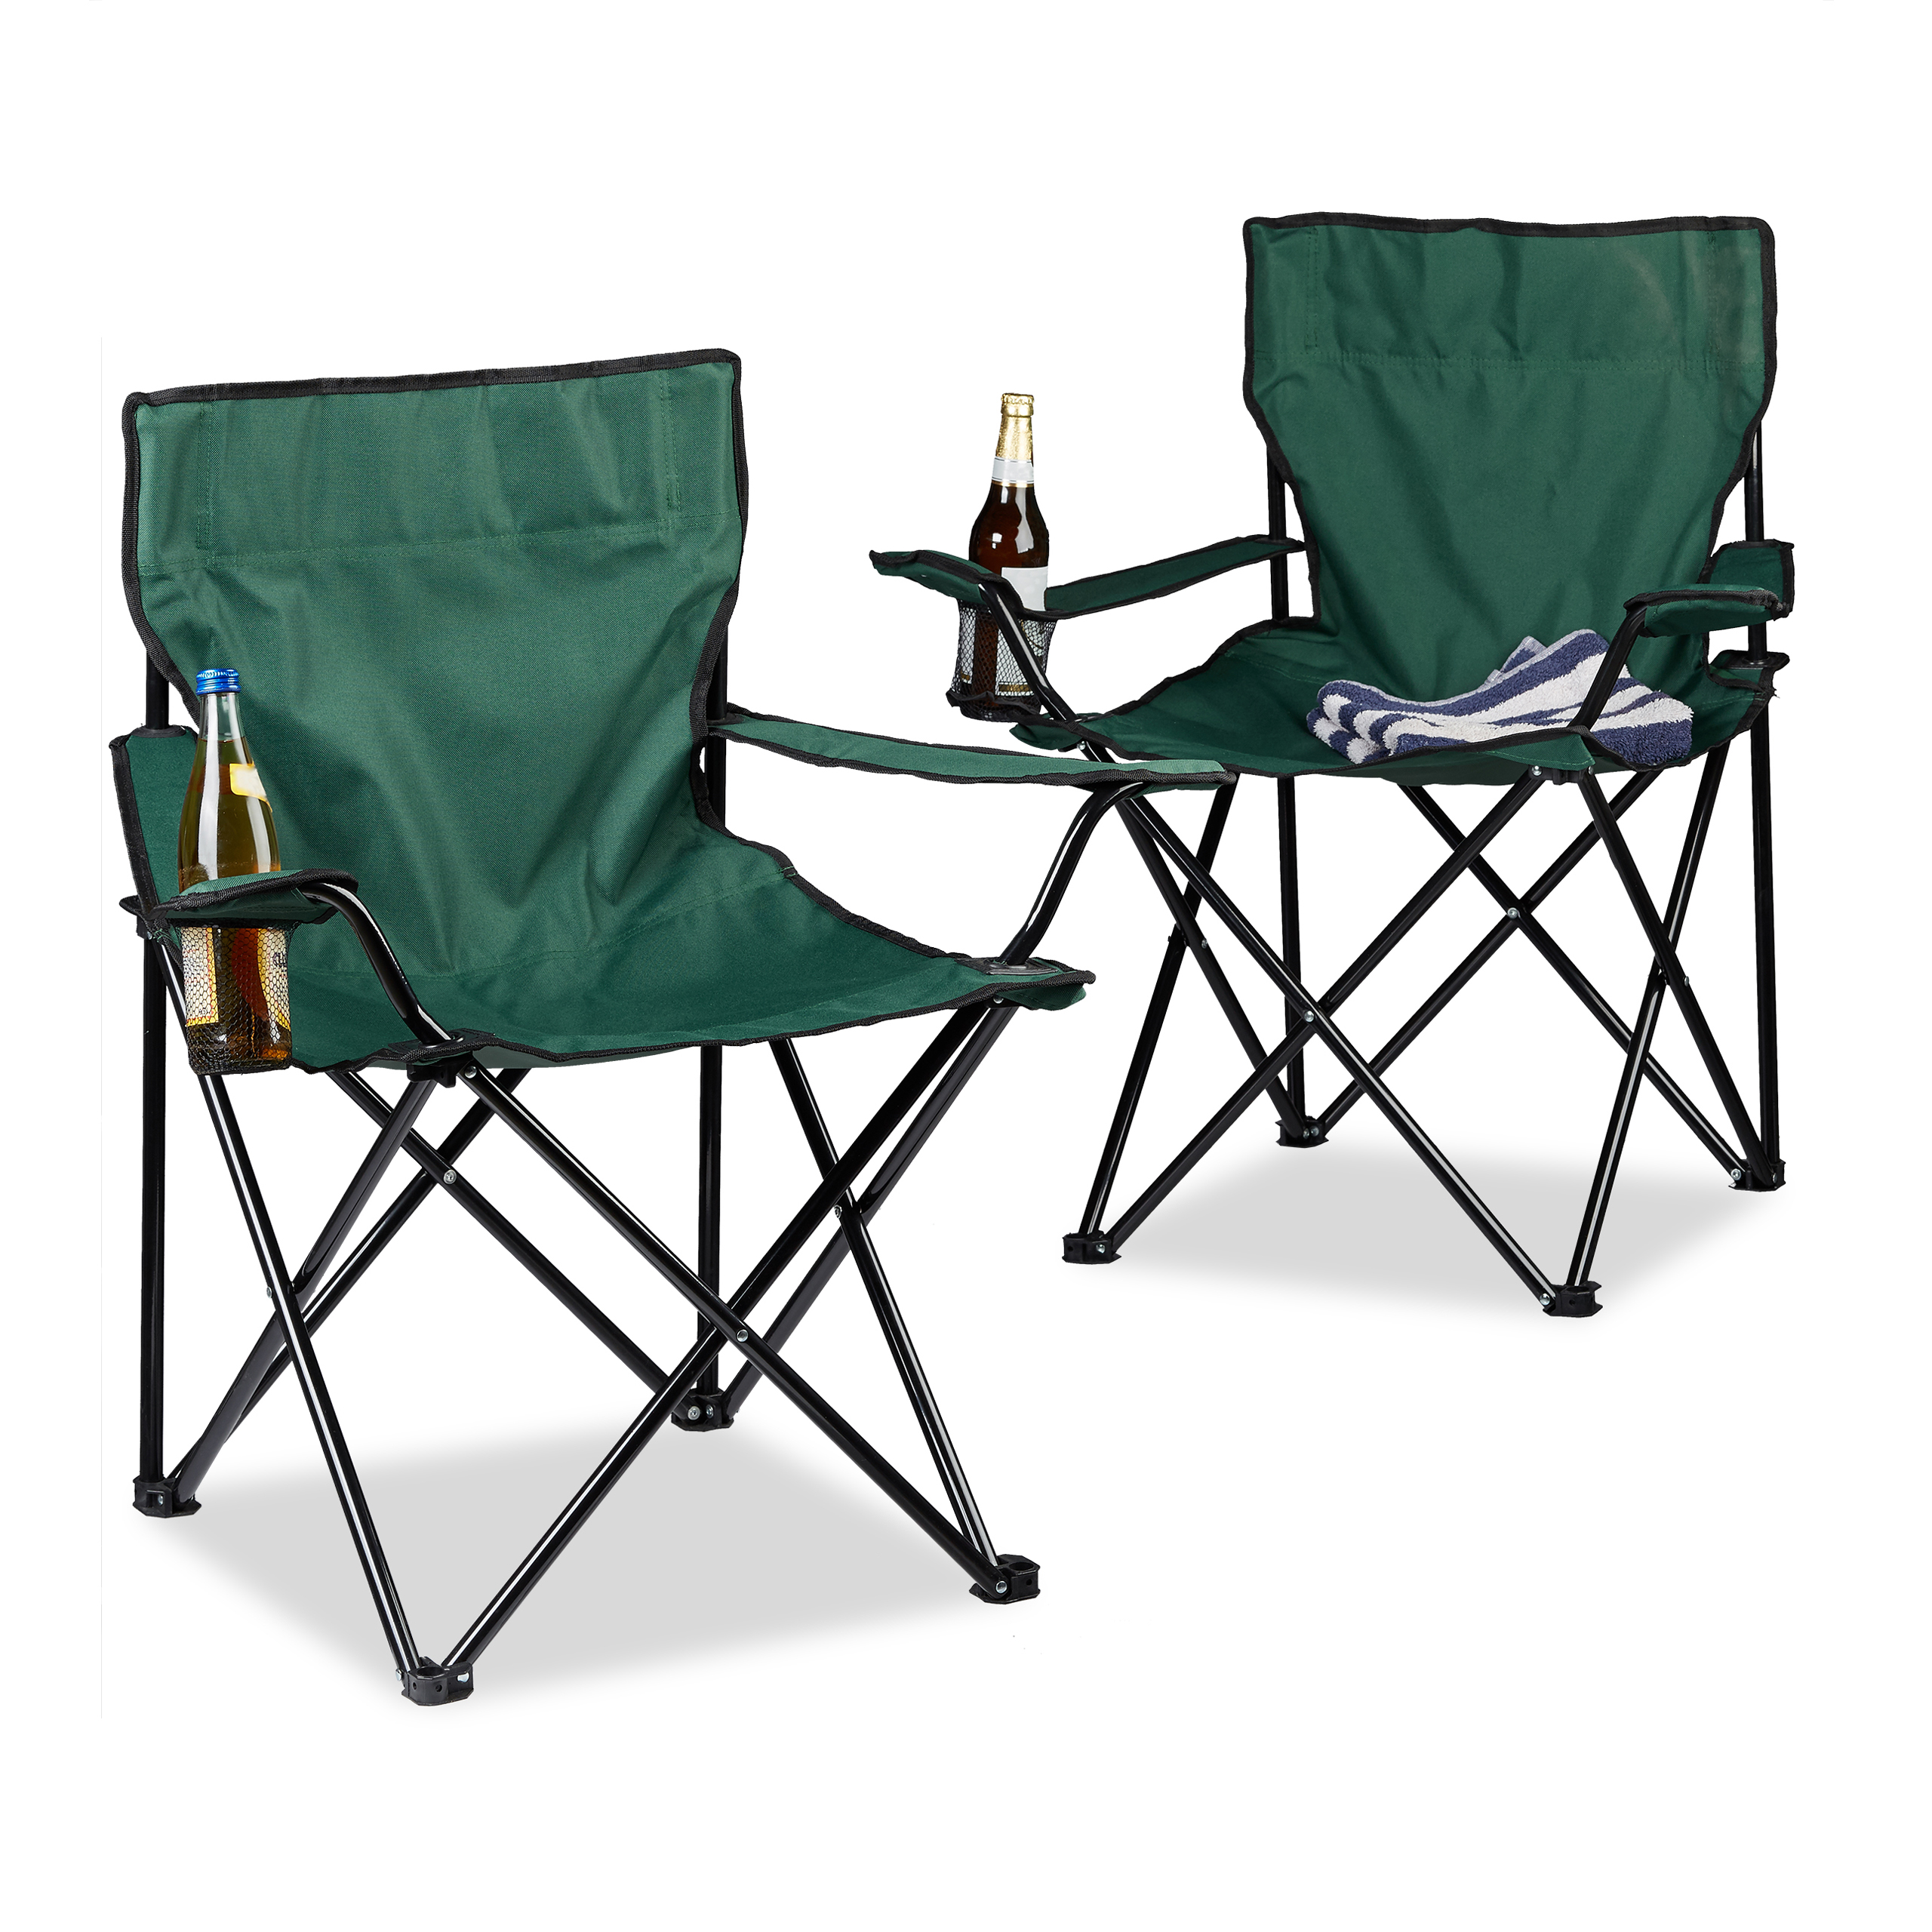 Set-of-2-Camping-Chairs-with-one-Cup-Holder-and-Armrests-Folding-Fishing-Chair